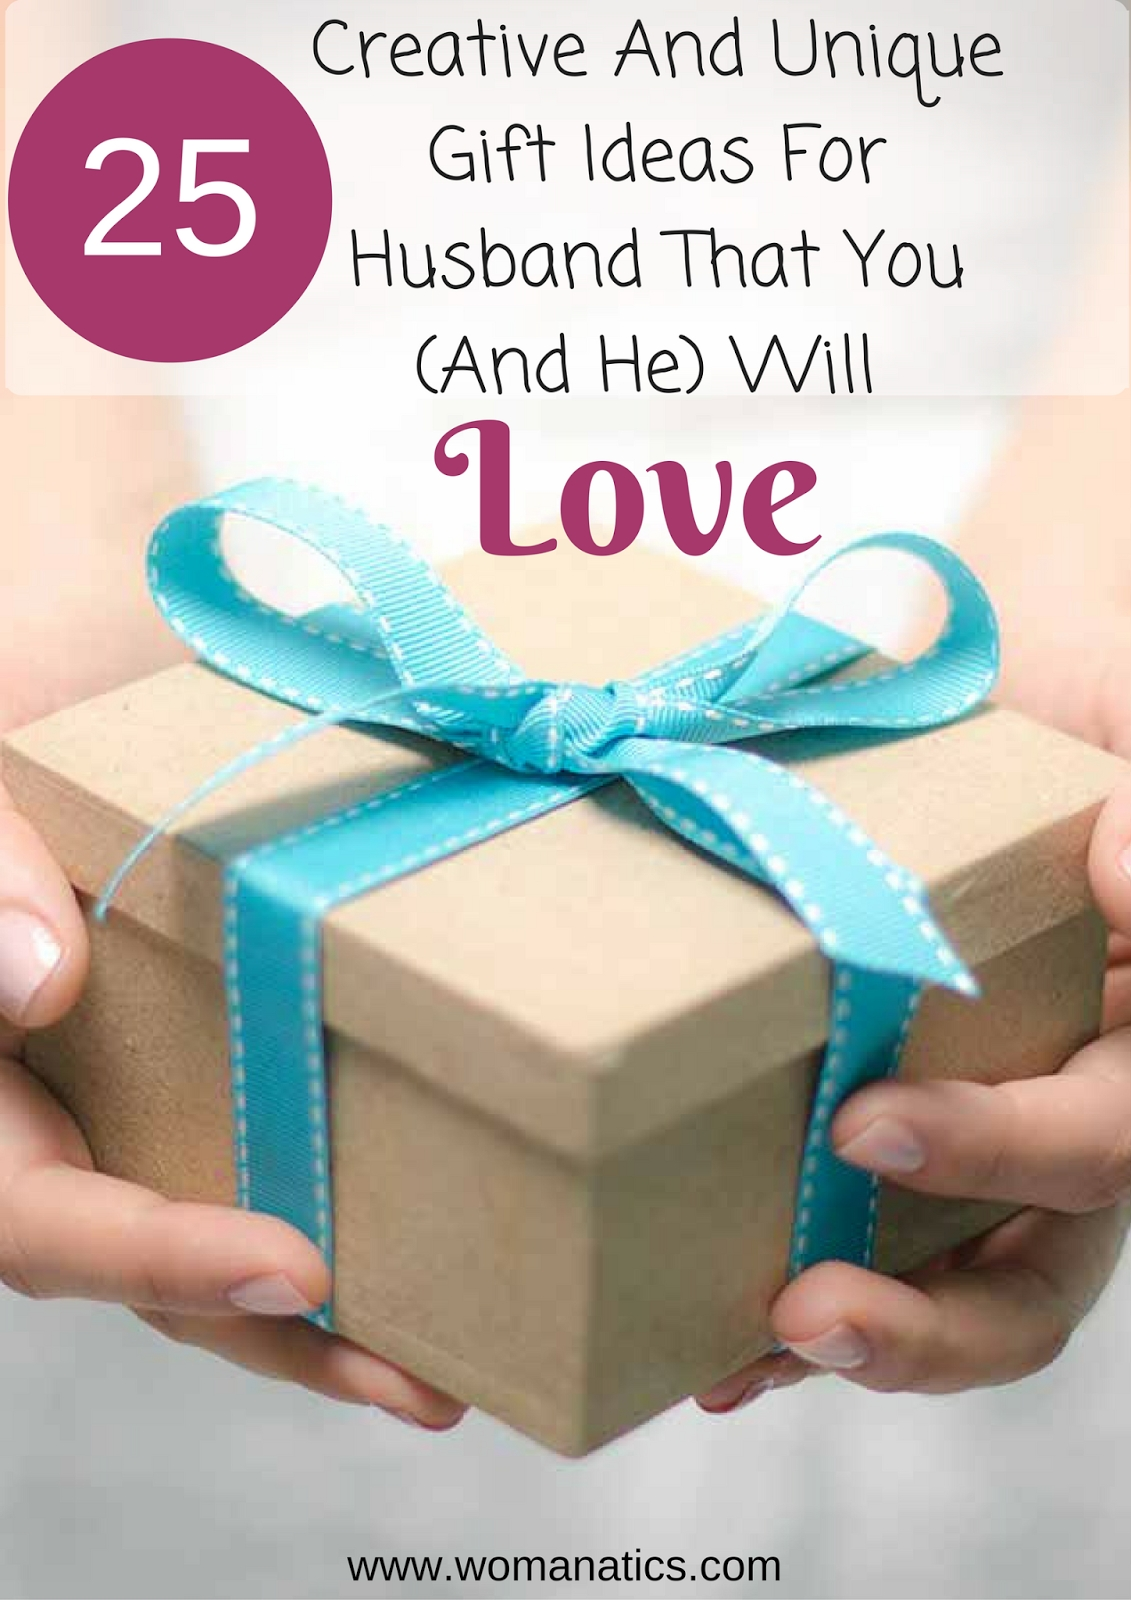 10 Famous Birthday Gift Ideas For Husband 25 creative and unique gift ideas for husbands birthday that you 7 2020